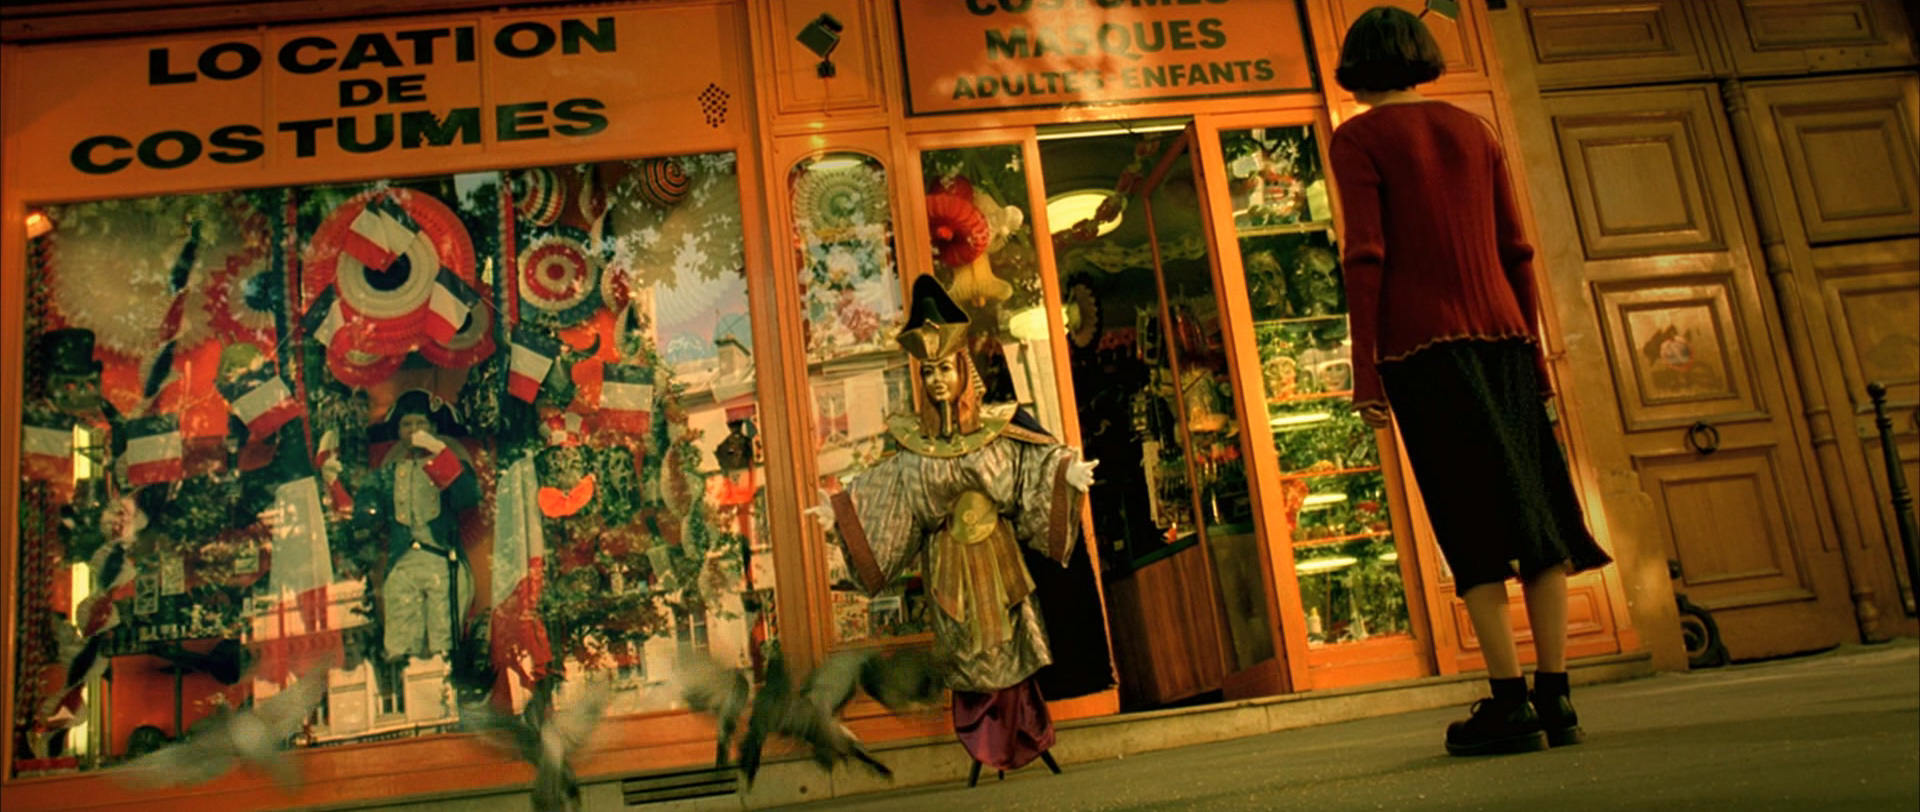 Amelie Poulain film locations Montmartre Paris France travel screenshots Jean-Pierre Jeunet